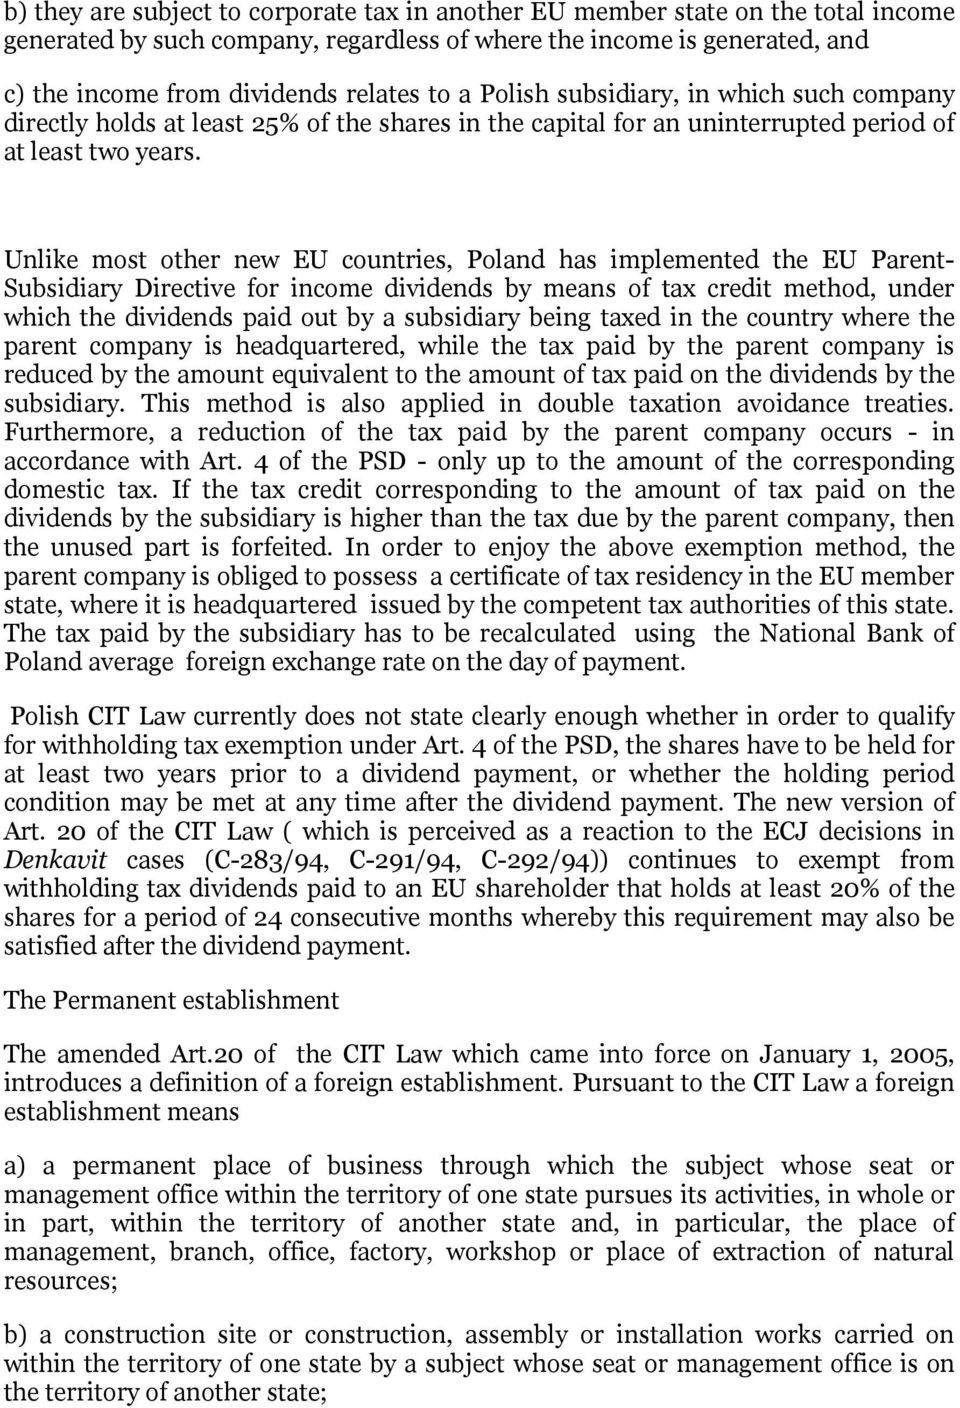 Unlike most other new EU countries, Poland has implemented the EU Parent- Subsidiary Directive for income dividends by means of tax credit method, under which the dividends paid out by a subsidiary